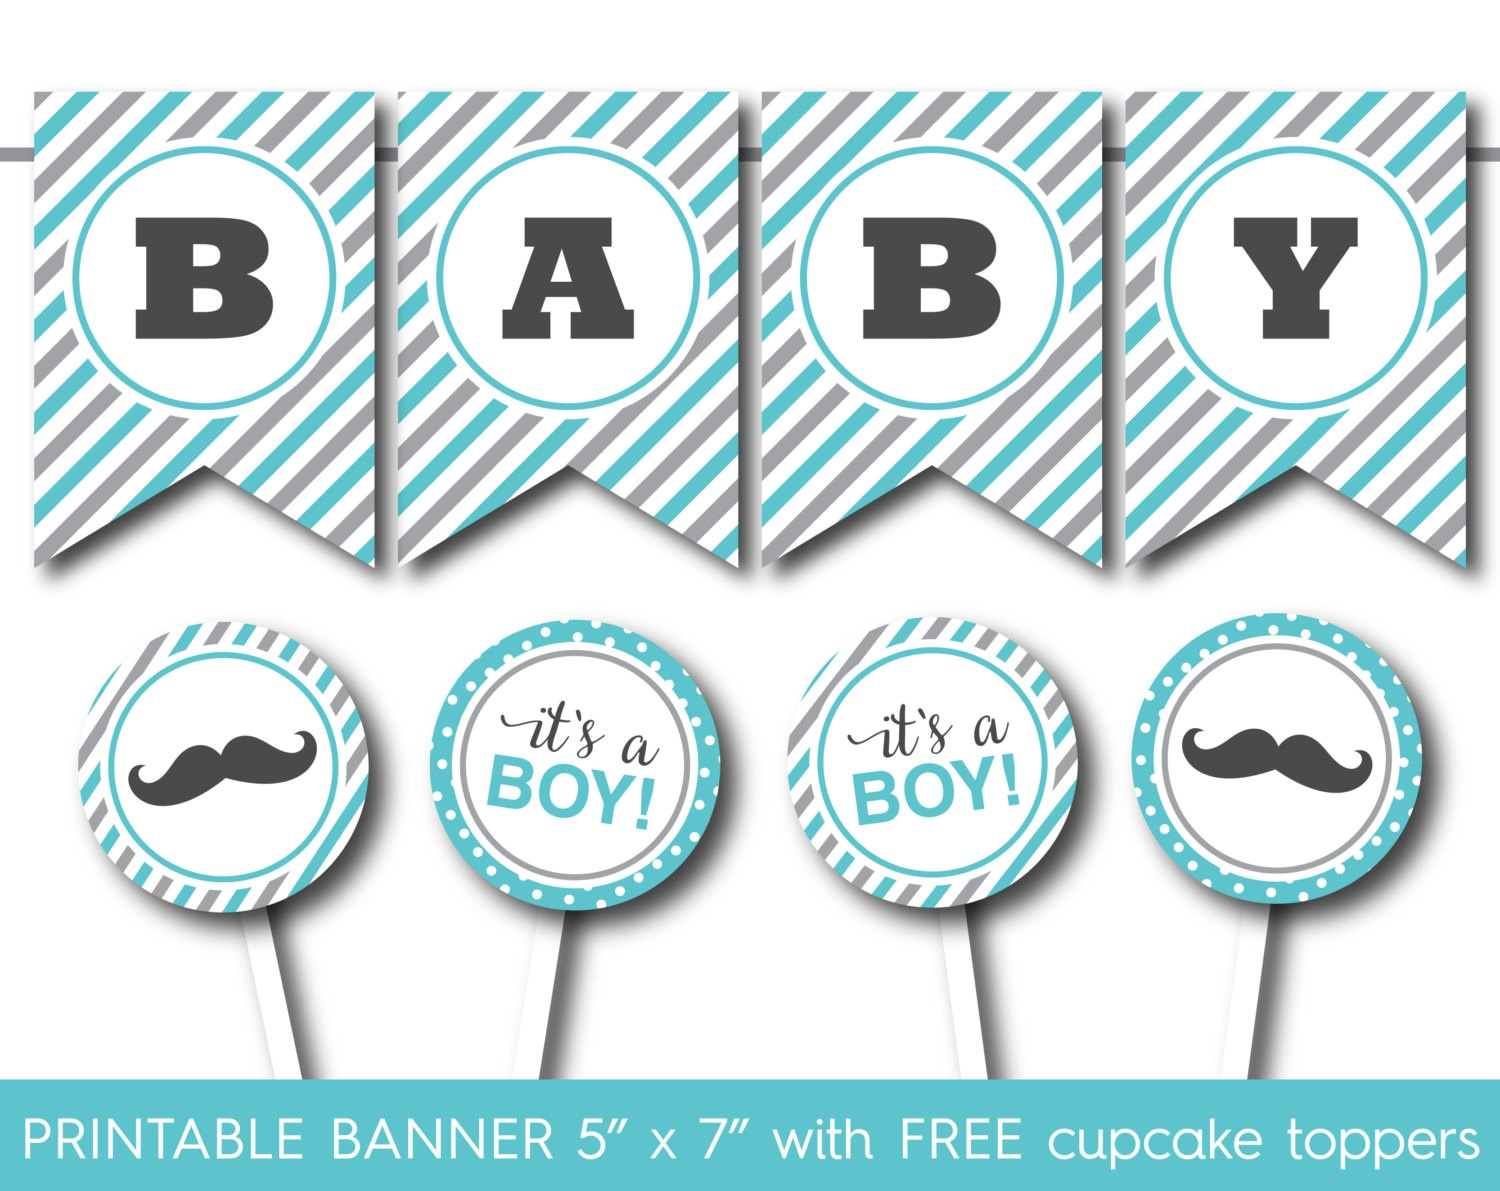 44 Cool Banner Letters | Kittybabylove - Free Printable Baby Shower Banner Letters